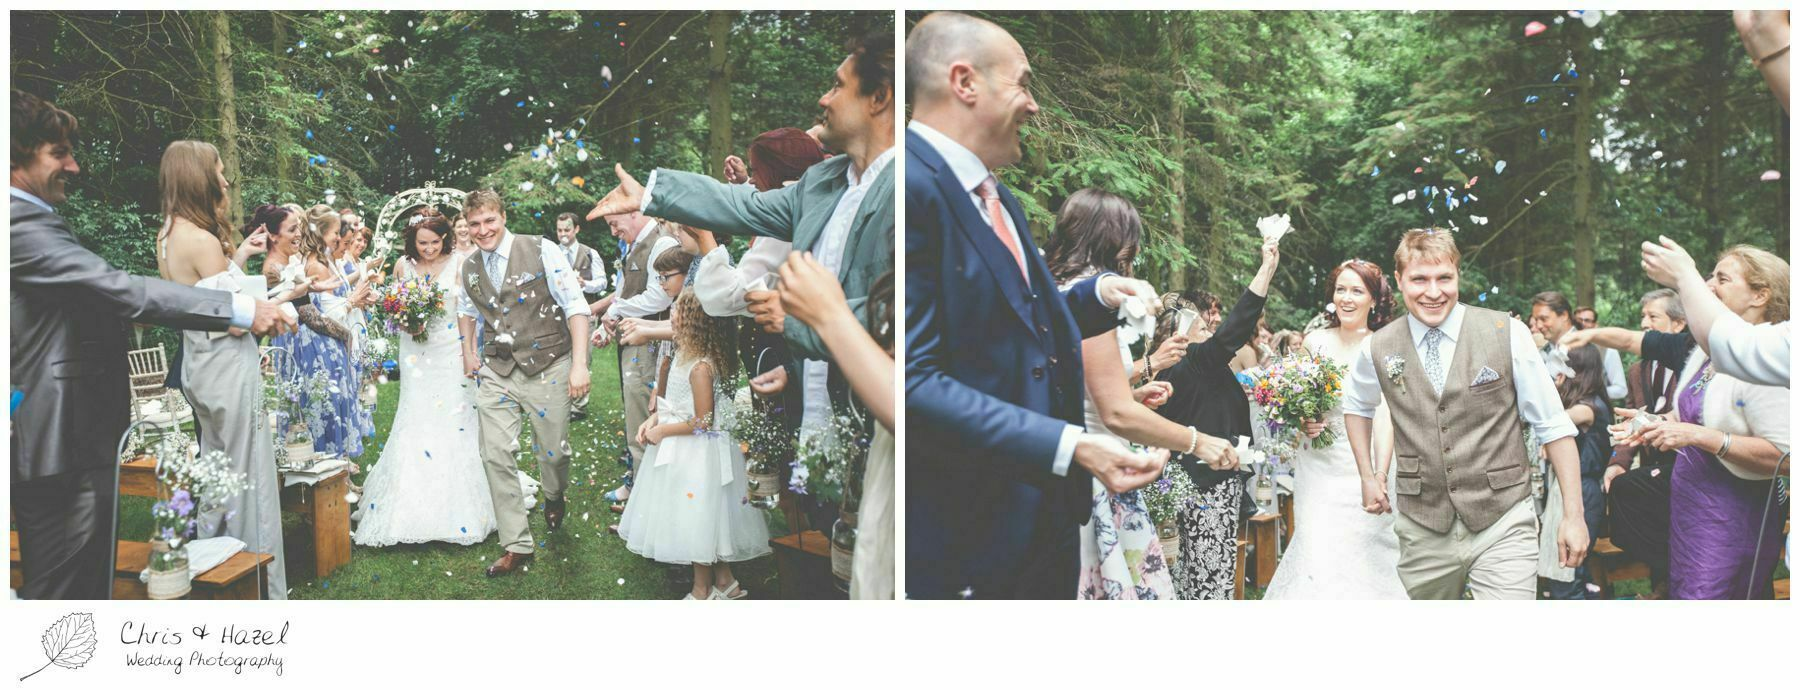 confetti, woodland ceremony, woodland, forest, ceremony, outdoor, forest wedding, woodland wedding, eco wedding, love letters, wedding, Eccup Wedding Photographer, Lineham Farm, Wedding Photography Leeds, Chris and Hazel Wedding Photography, Richard Wyatt, Laura Kelly